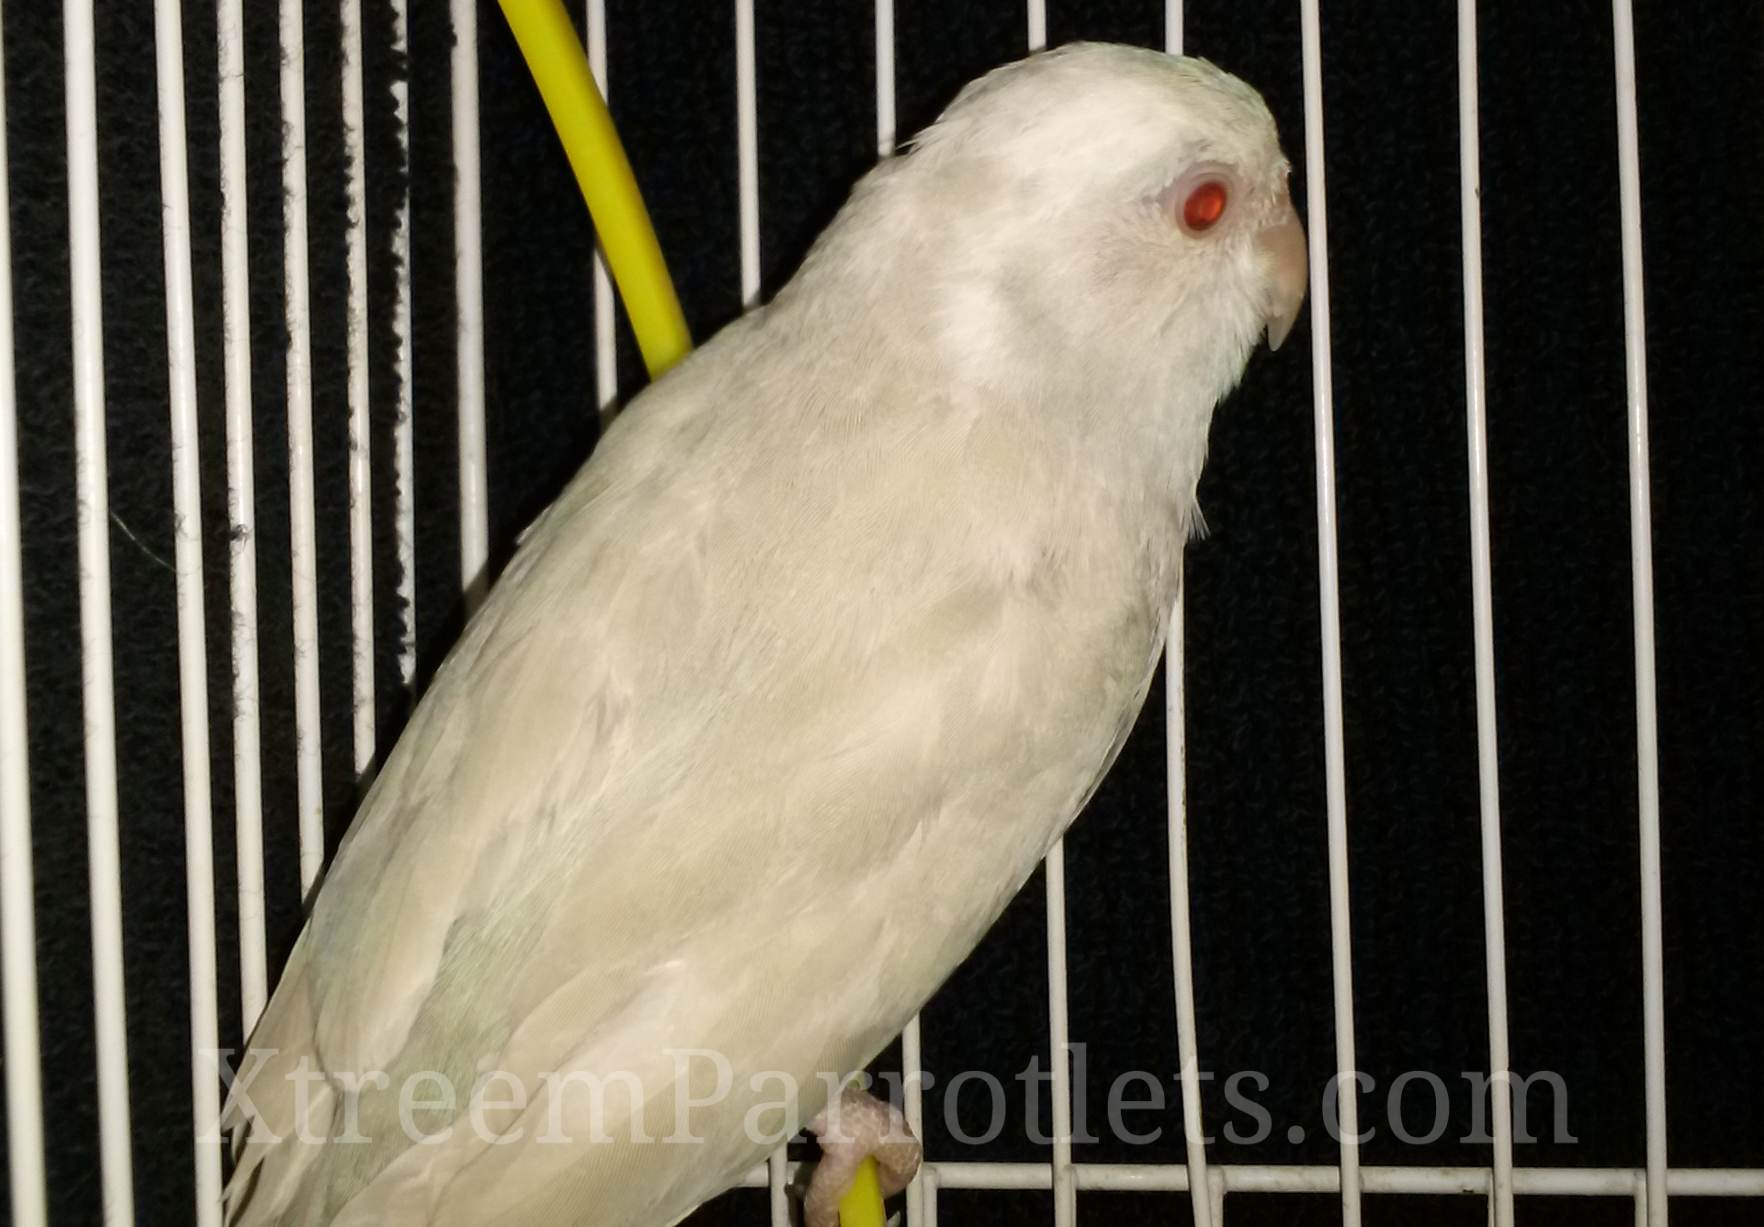 white-fallow-cinnamon-pied-parrotlet-bird-for-sale